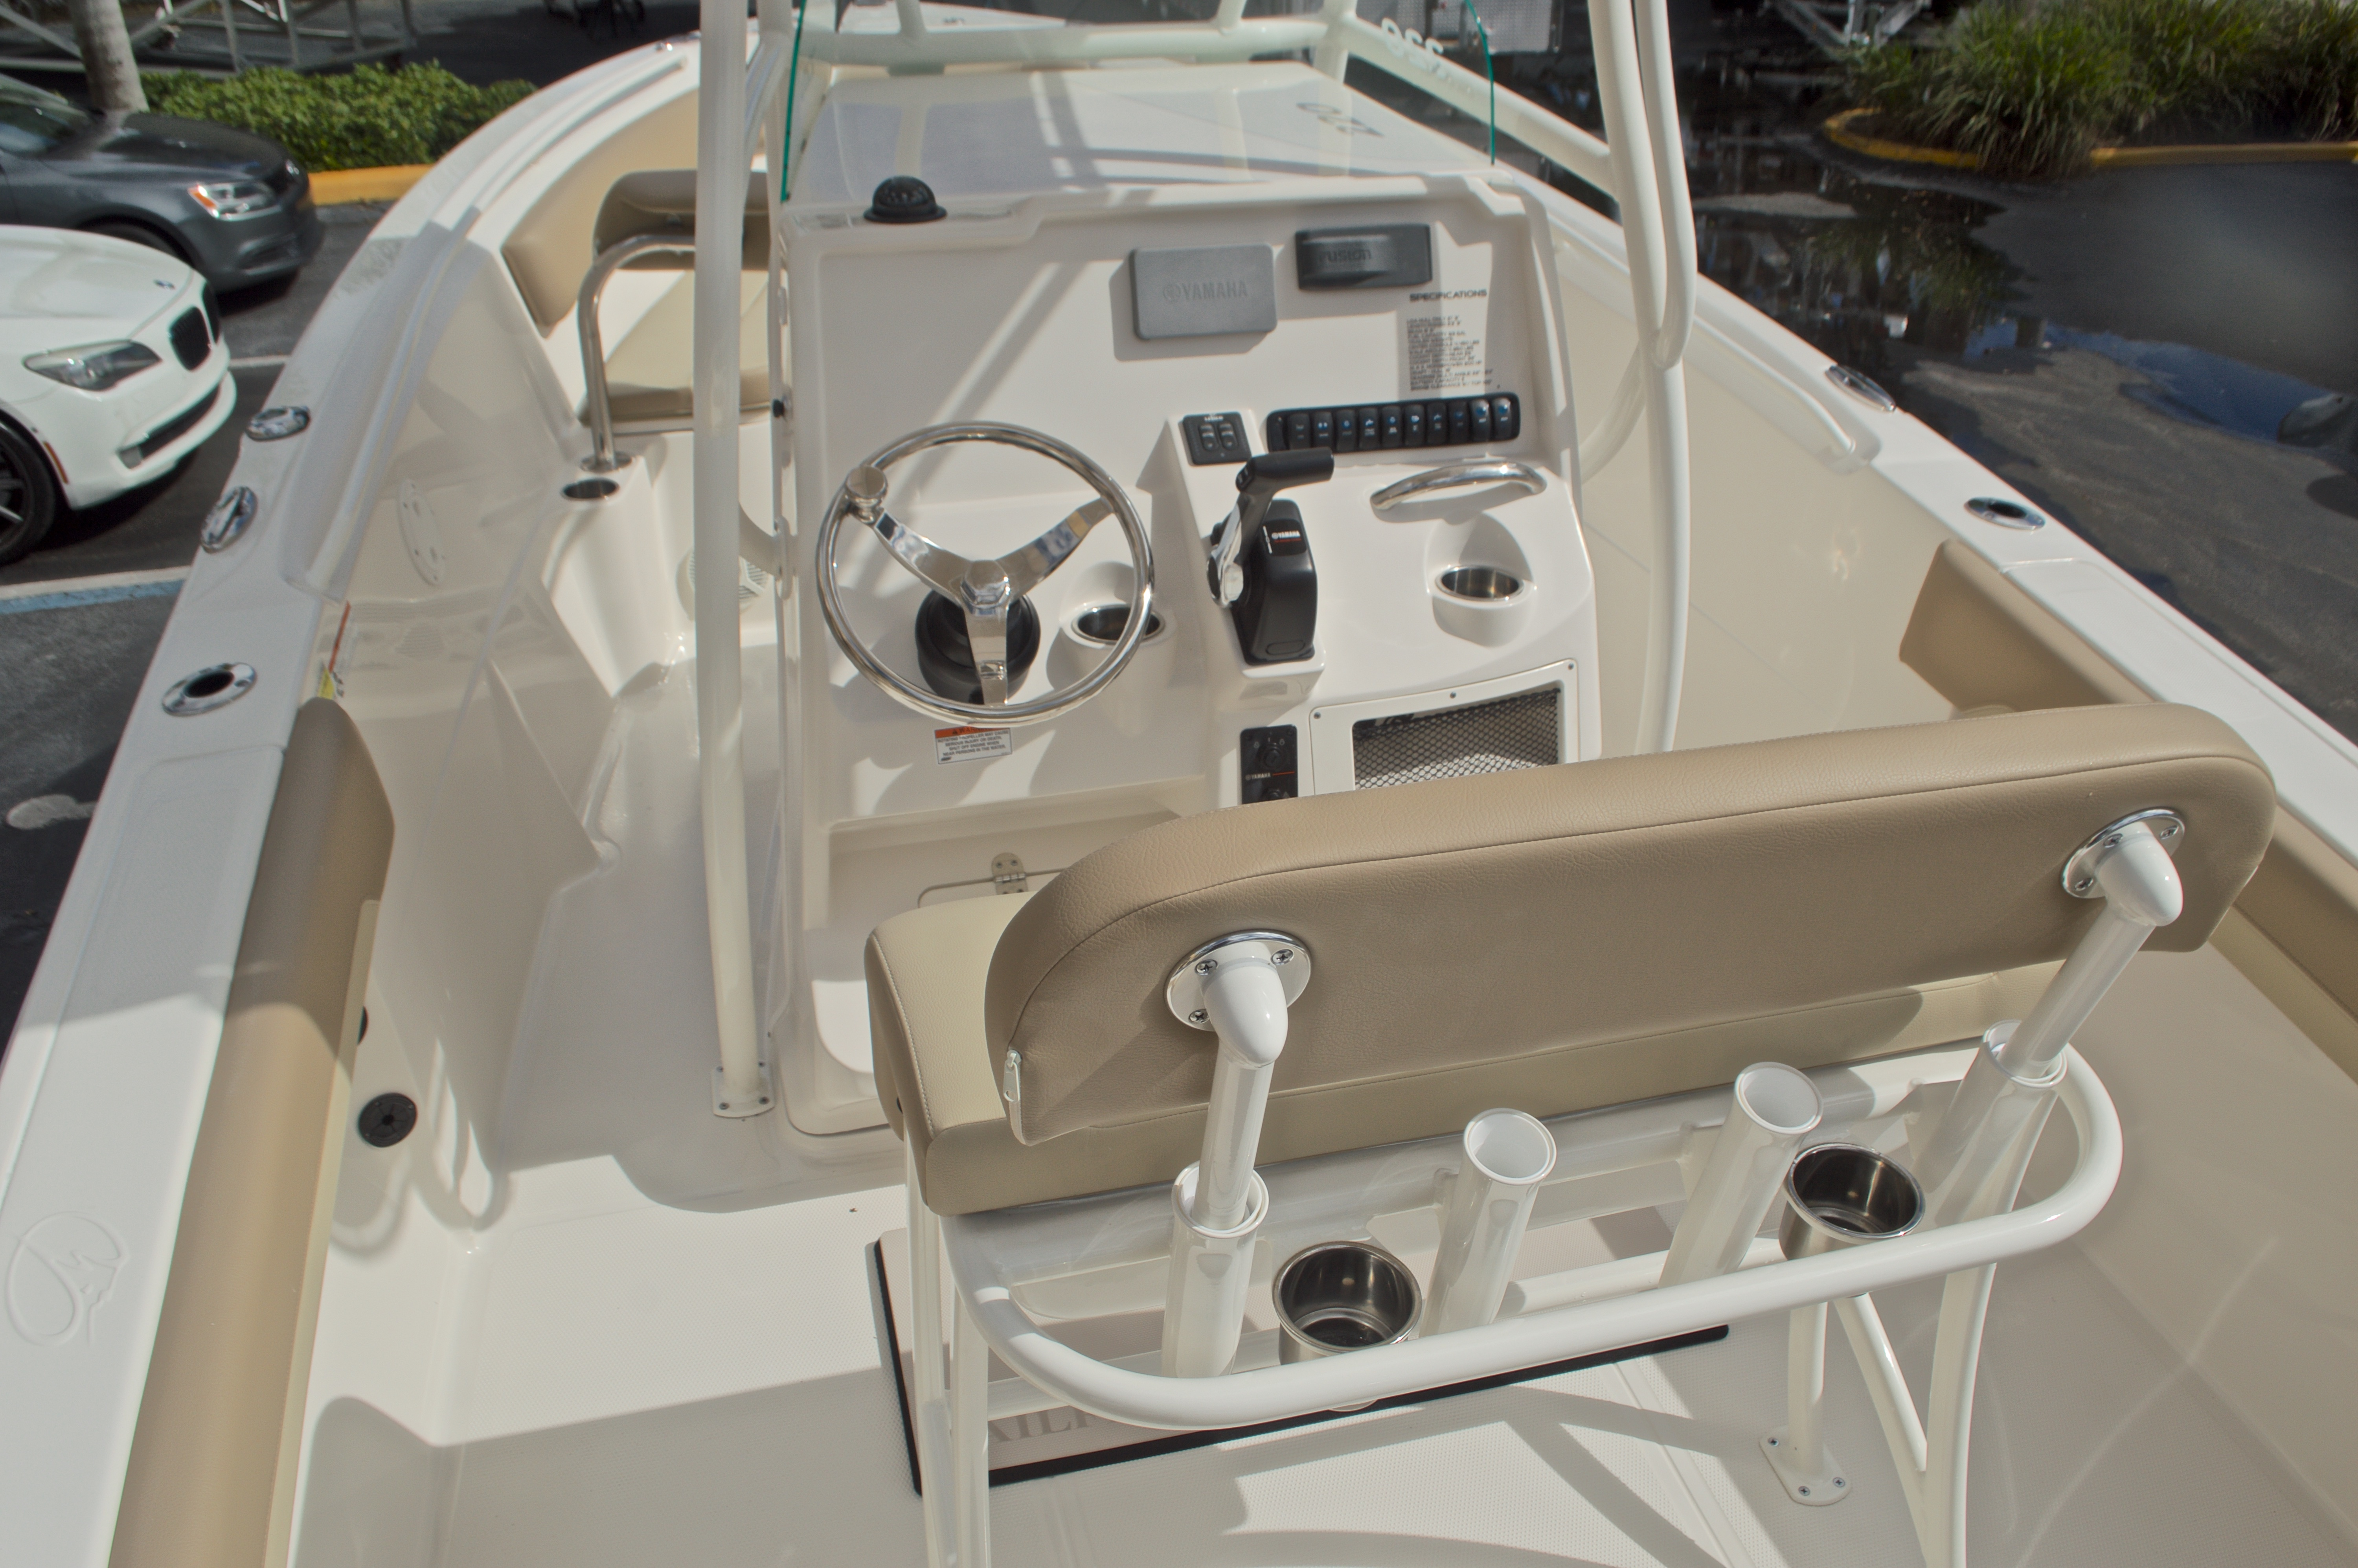 Thumbnail 10 for New 2017 Sailfish 220 CC Center Console boat for sale in Miami, FL